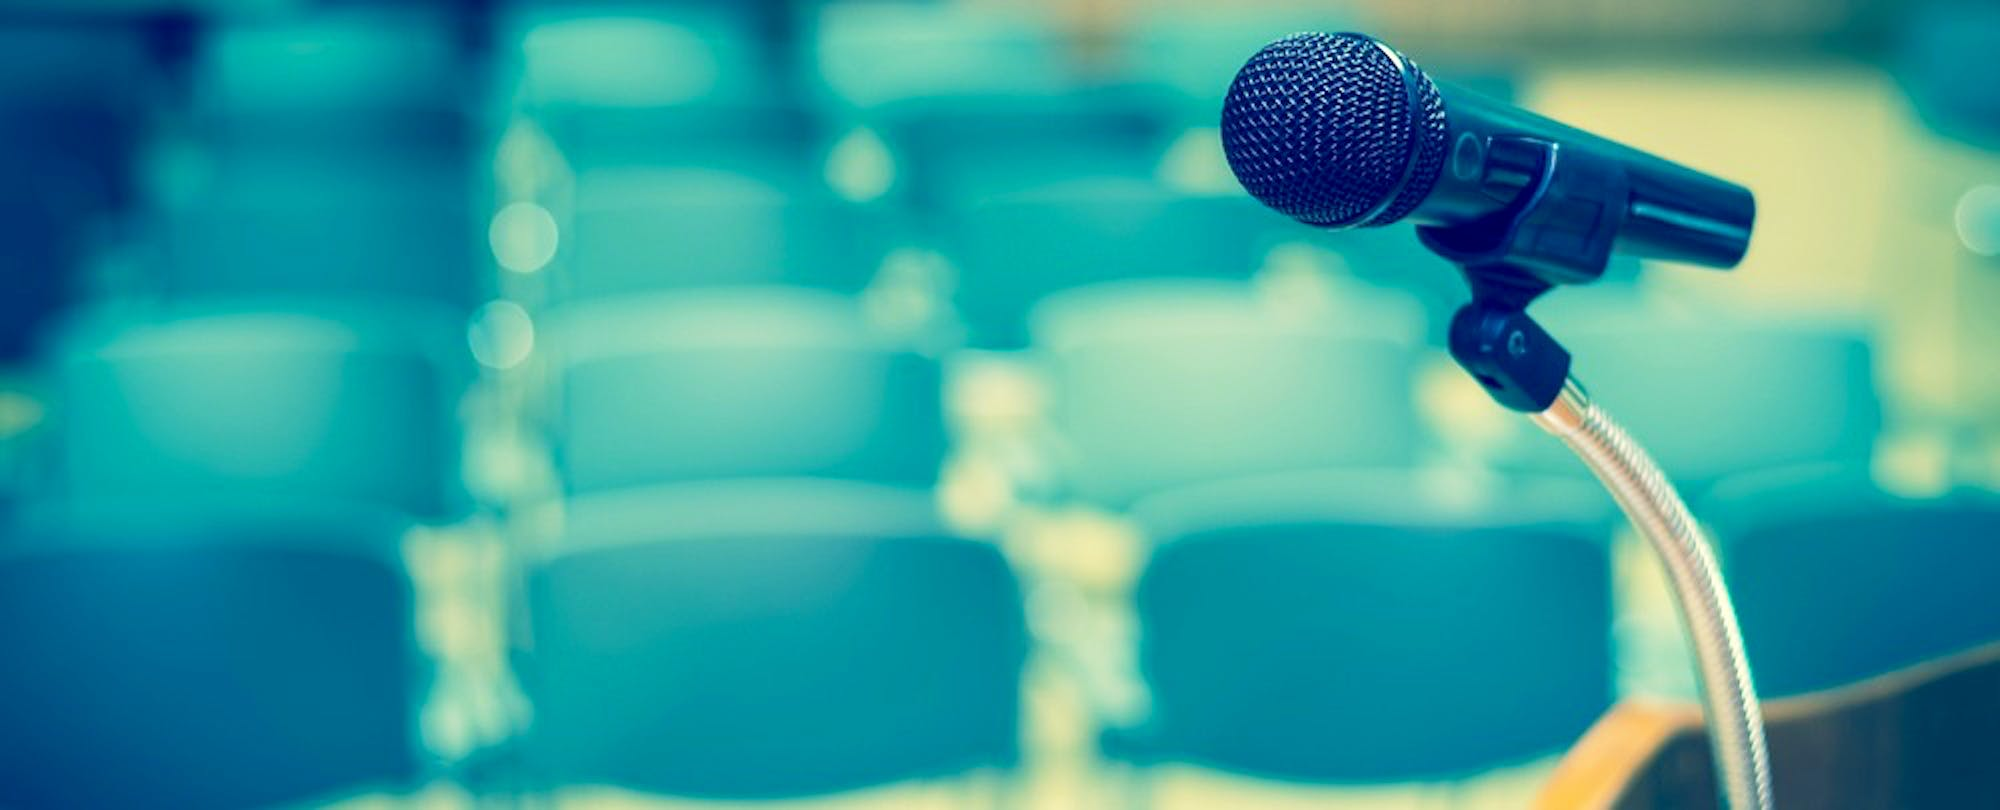 5 Reasons We Will Avoid Edtech Conferences